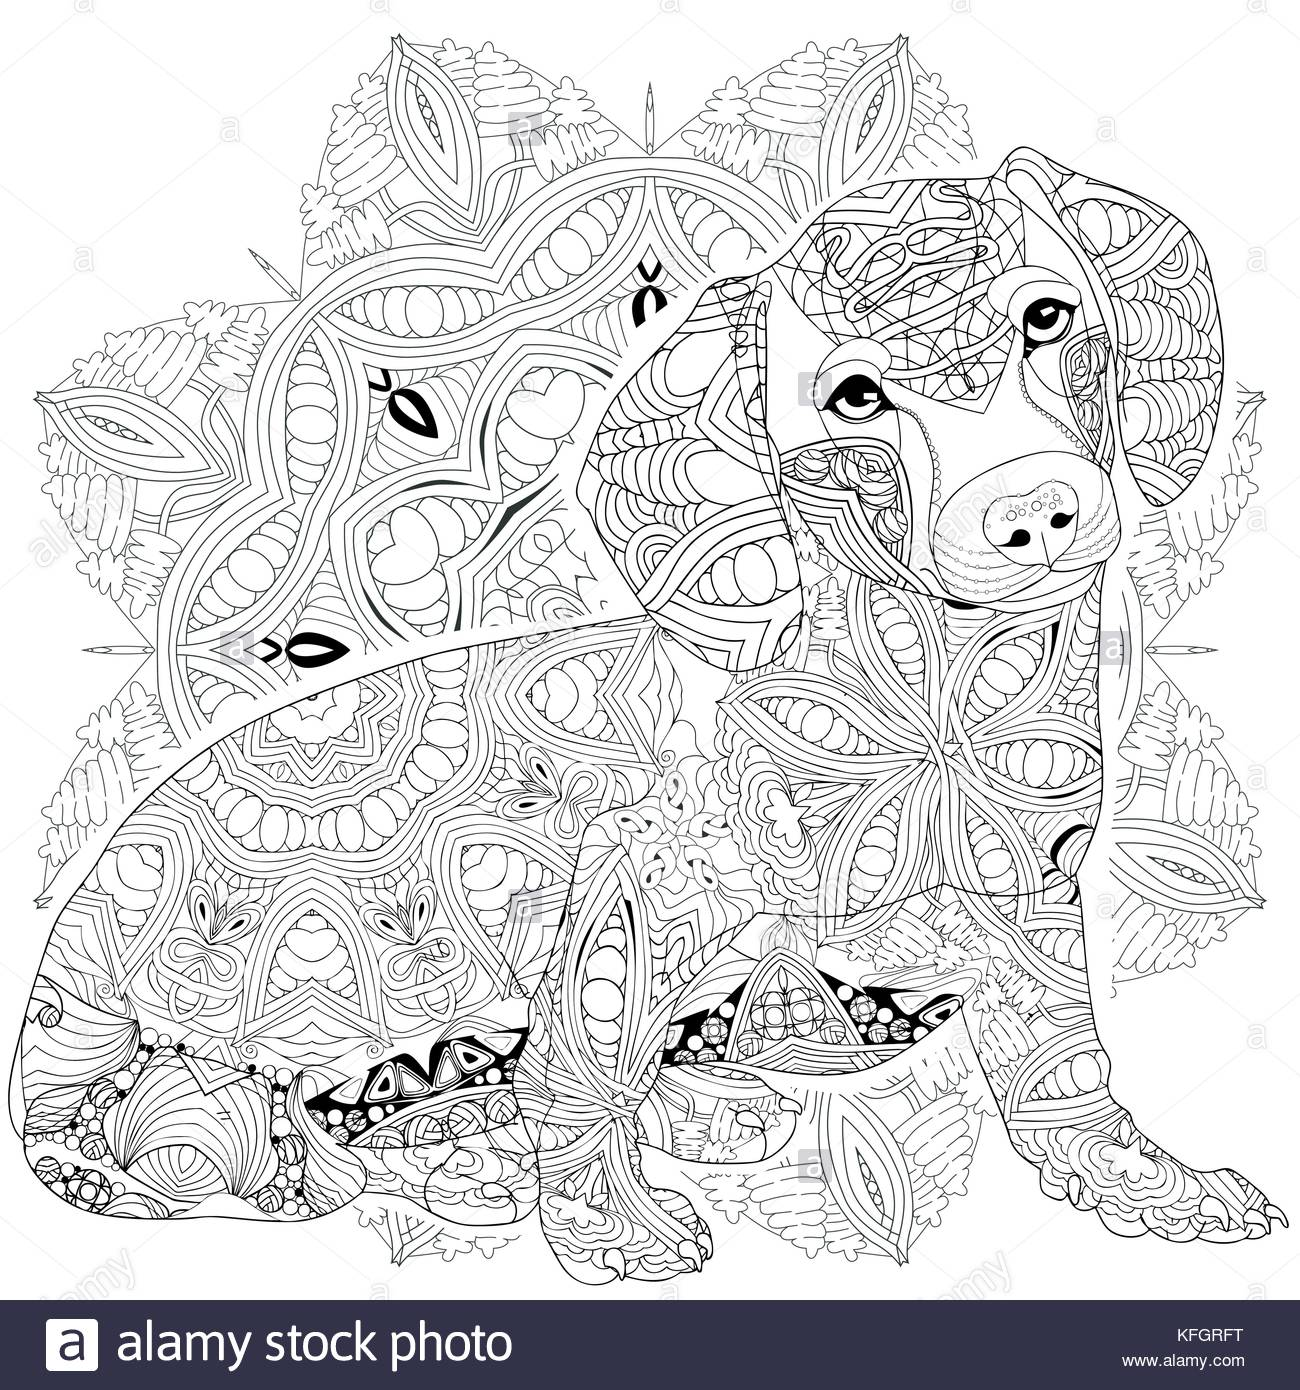 Hand Painted Art Design Adult Anti Stress Coloring Page Black And White Drawn Illustration Dog For Book